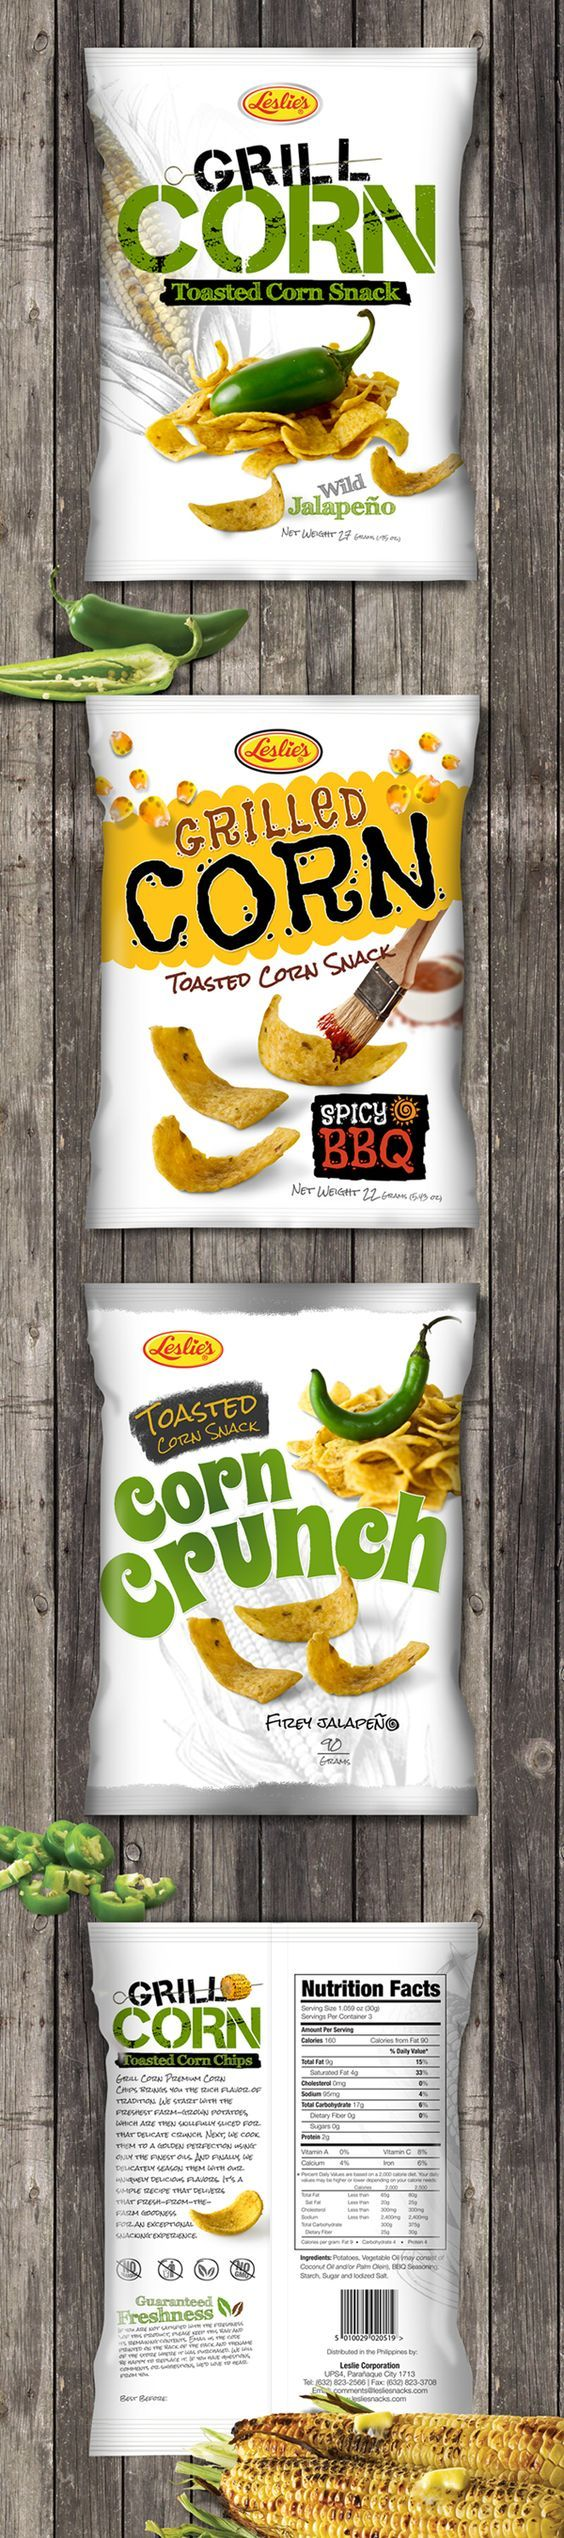 Kreativebones Design 2013 © Corn Chips Packaging Design Concept for a corn chip snack.  This was the preliminary design set prior to the final version. I personally liked concept #1 versus the one approved=):